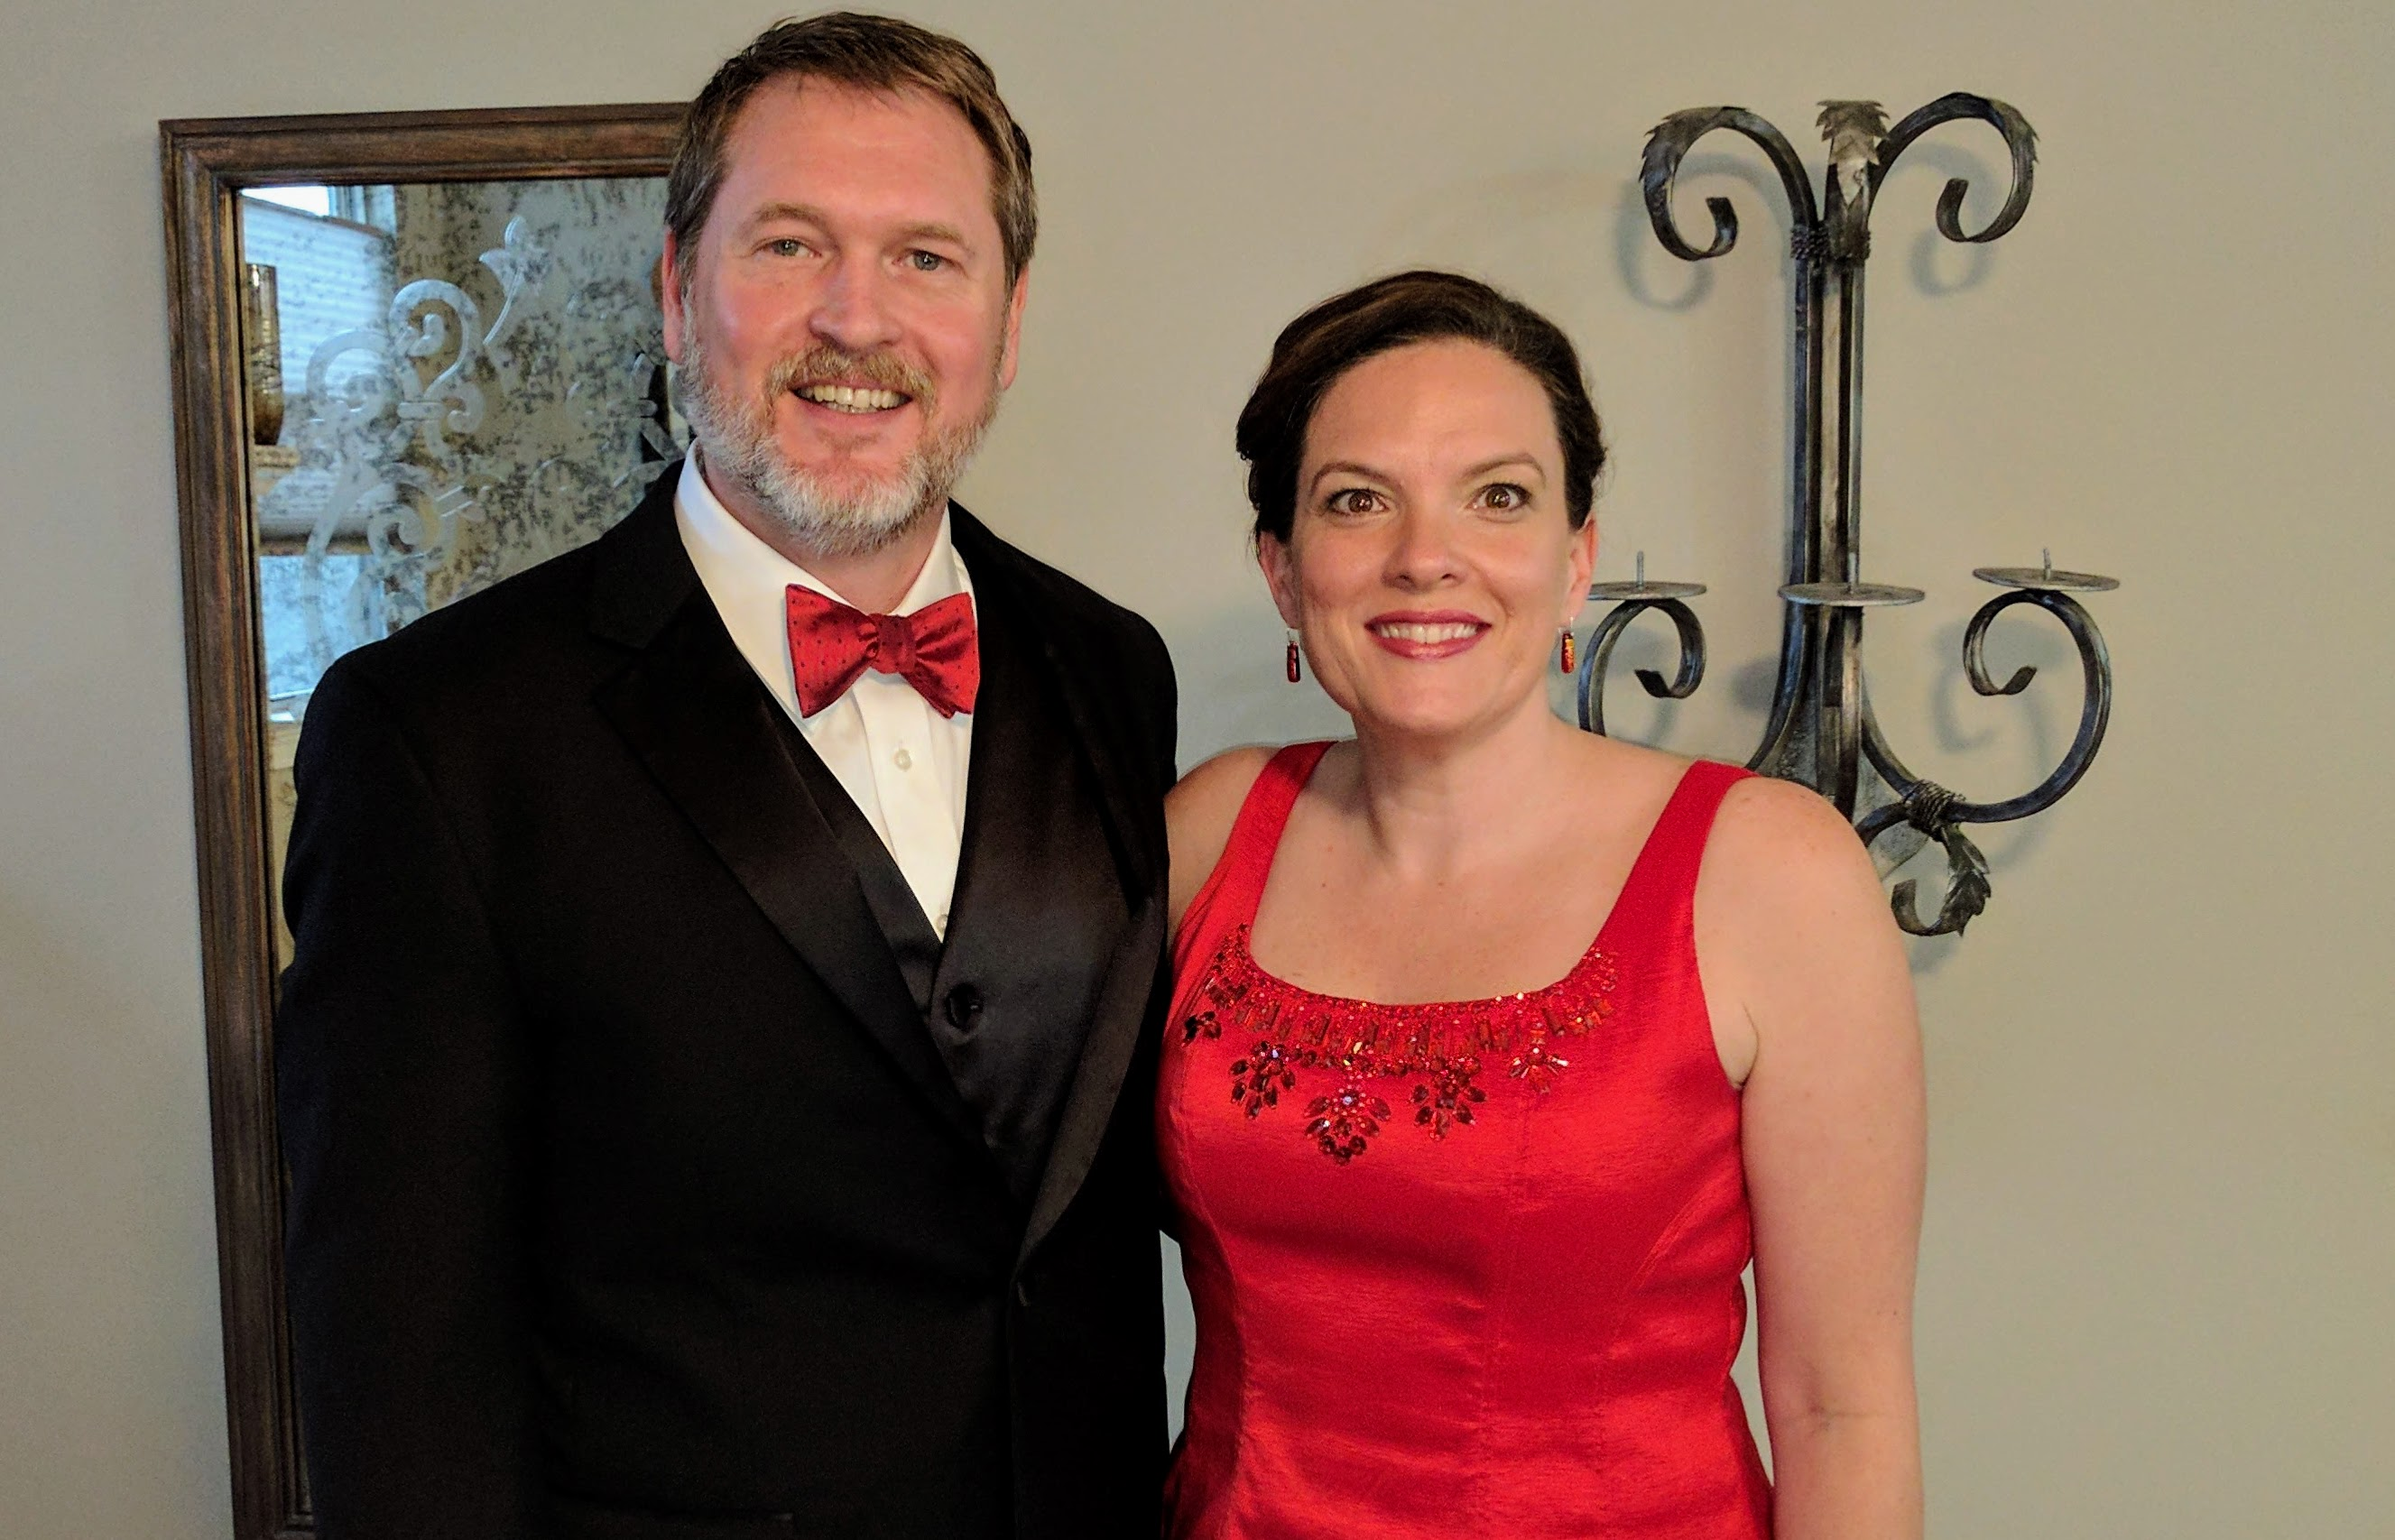 Geoff McGowen and wife dressed for fun night out